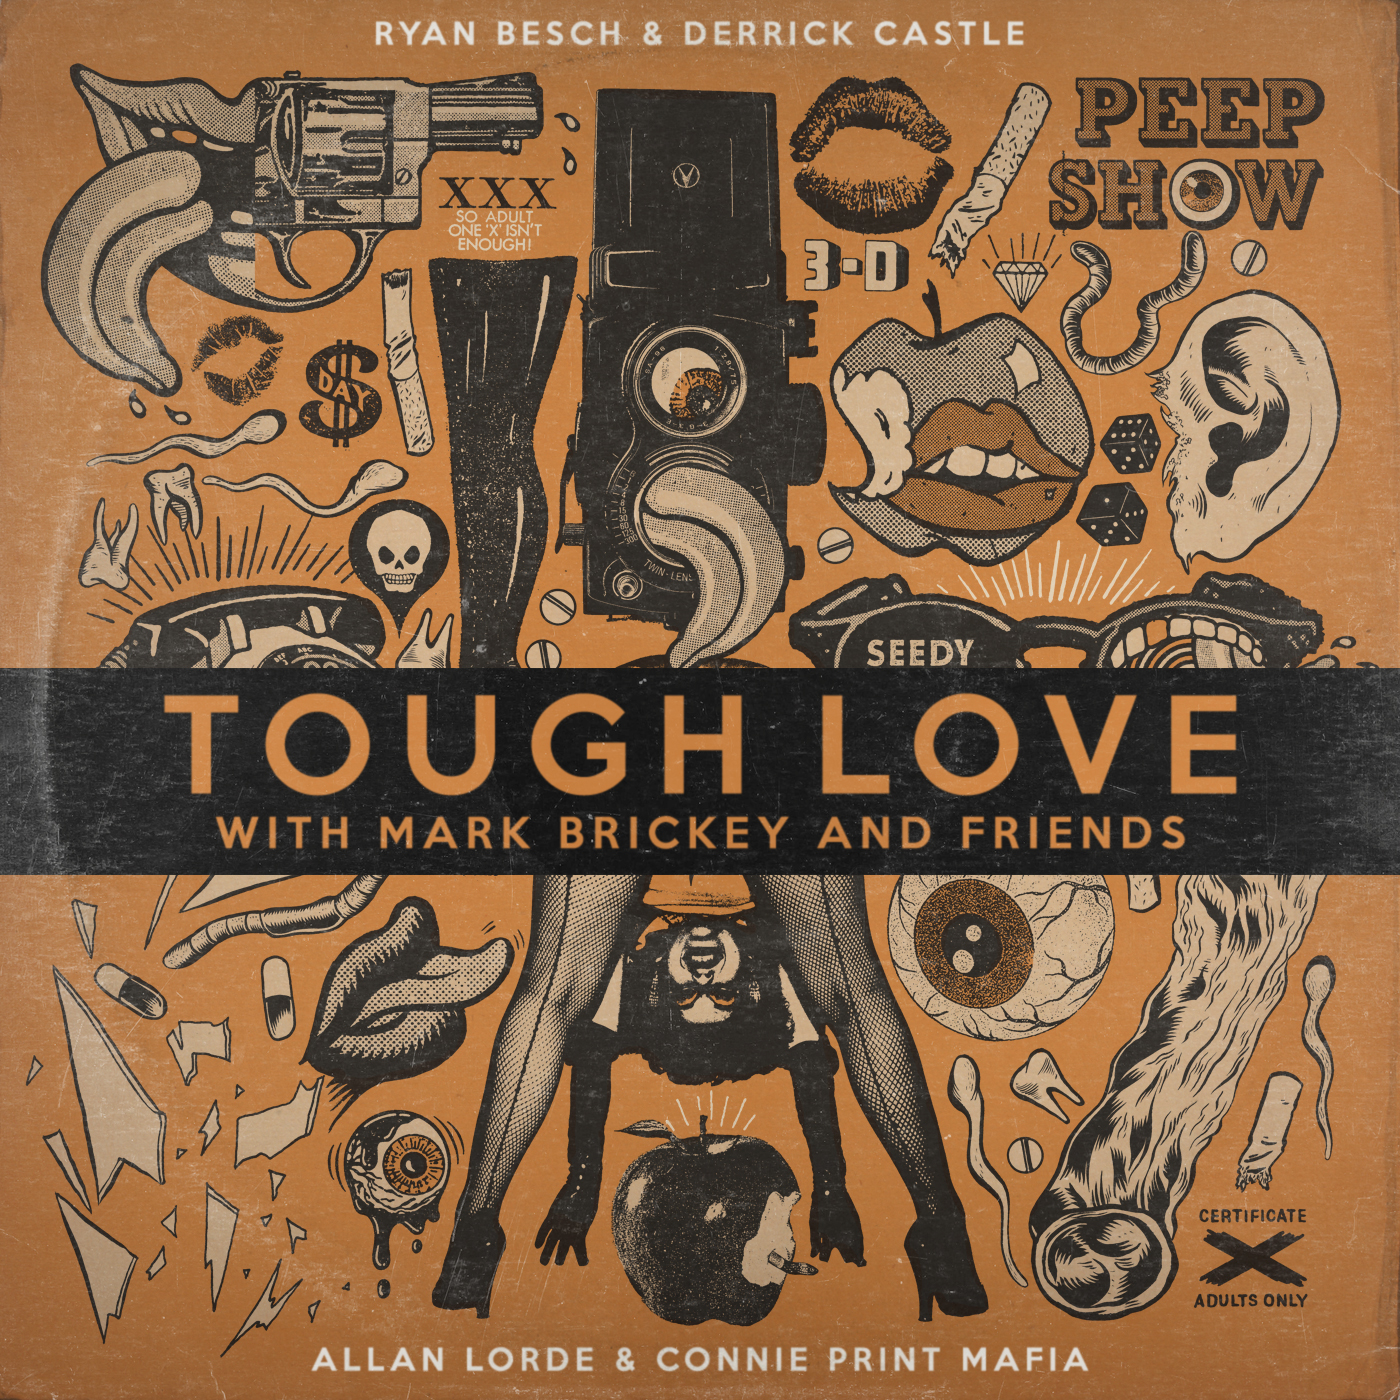 Episode 322 - Tough Love with Mark Brickey and Friends